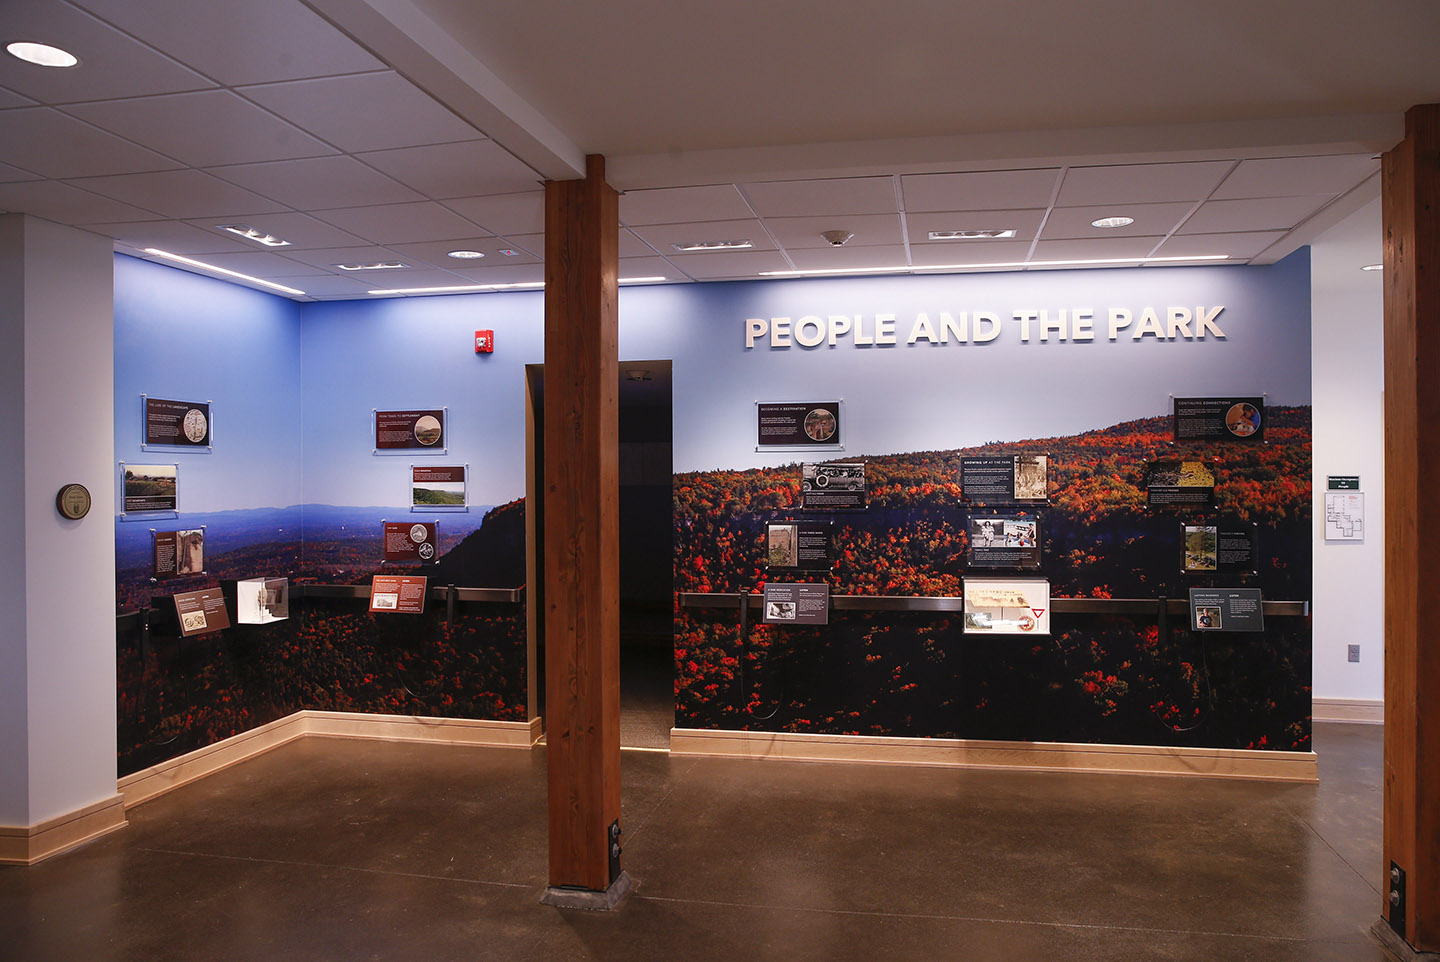 People and the Park exhibit highlighting the more recent, human history of the park.